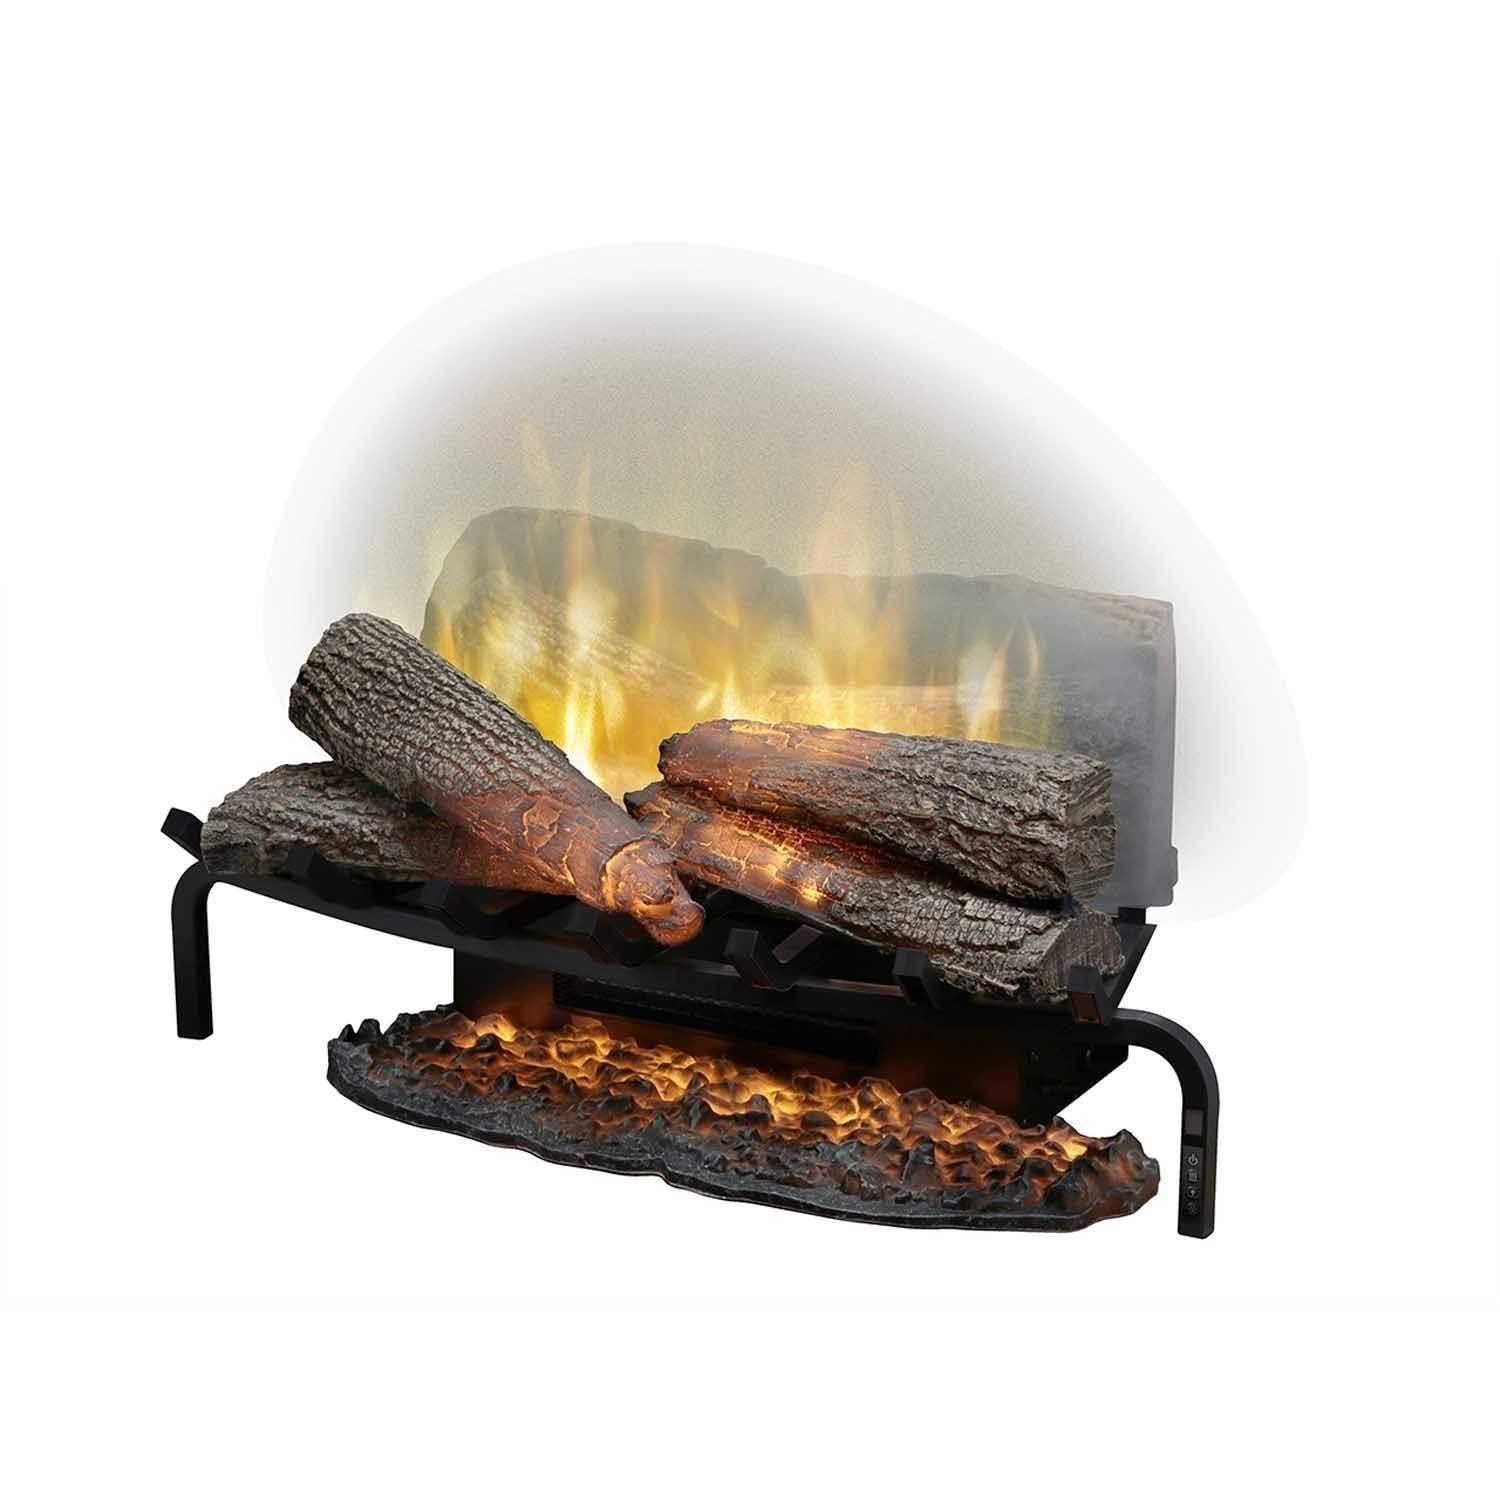 Dimplex Revillusion 25 Inch Electric Fireplace Log Set